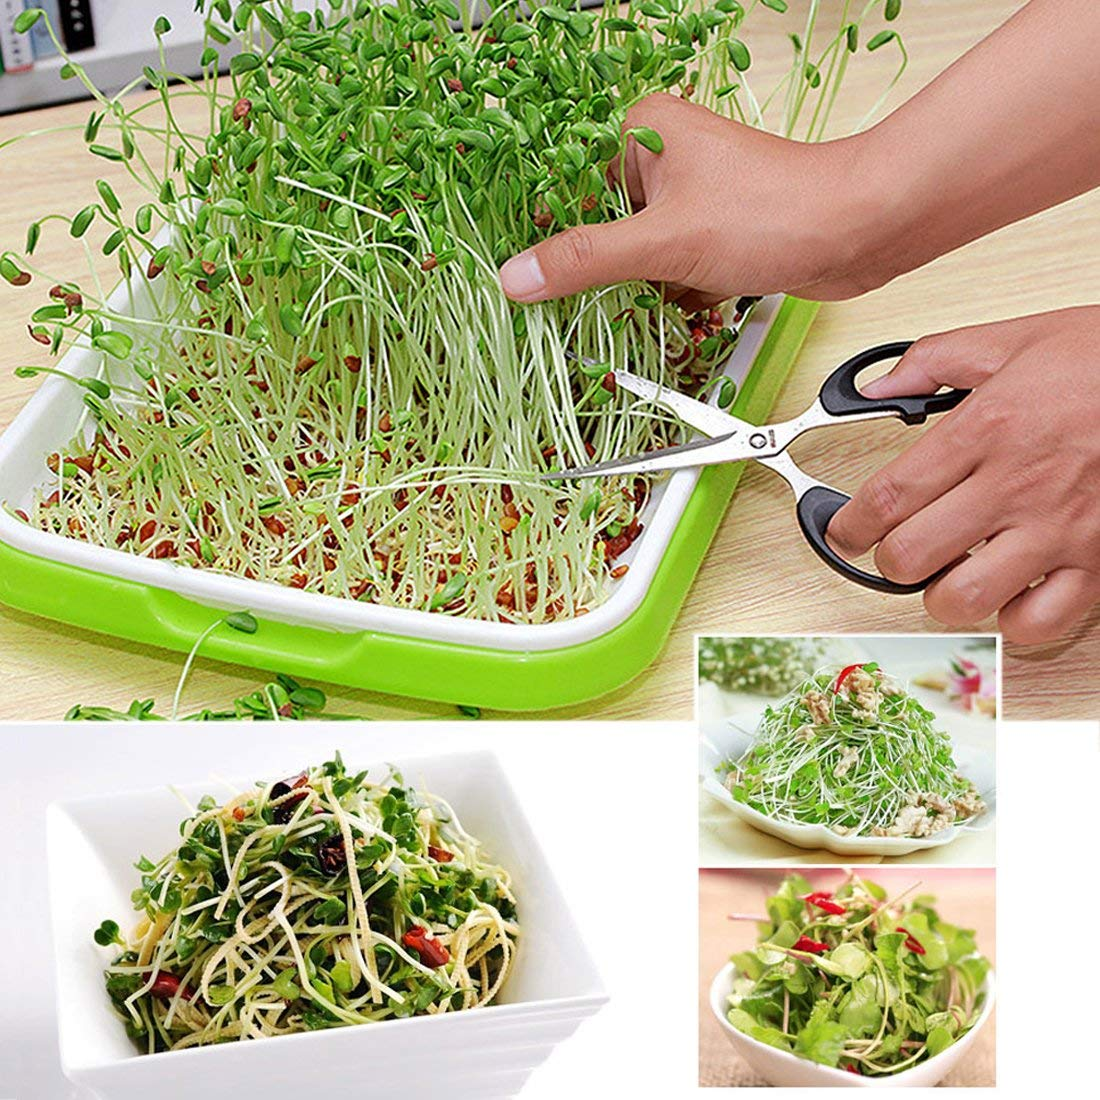 Wheat Grass Useful for Growing Fodder Plants and Hydroponic Growing Seed Germination Tray Nursery Tray for Seedling Good Work at Starting Seeds Sprouting Peerless Seedling Trays Sold